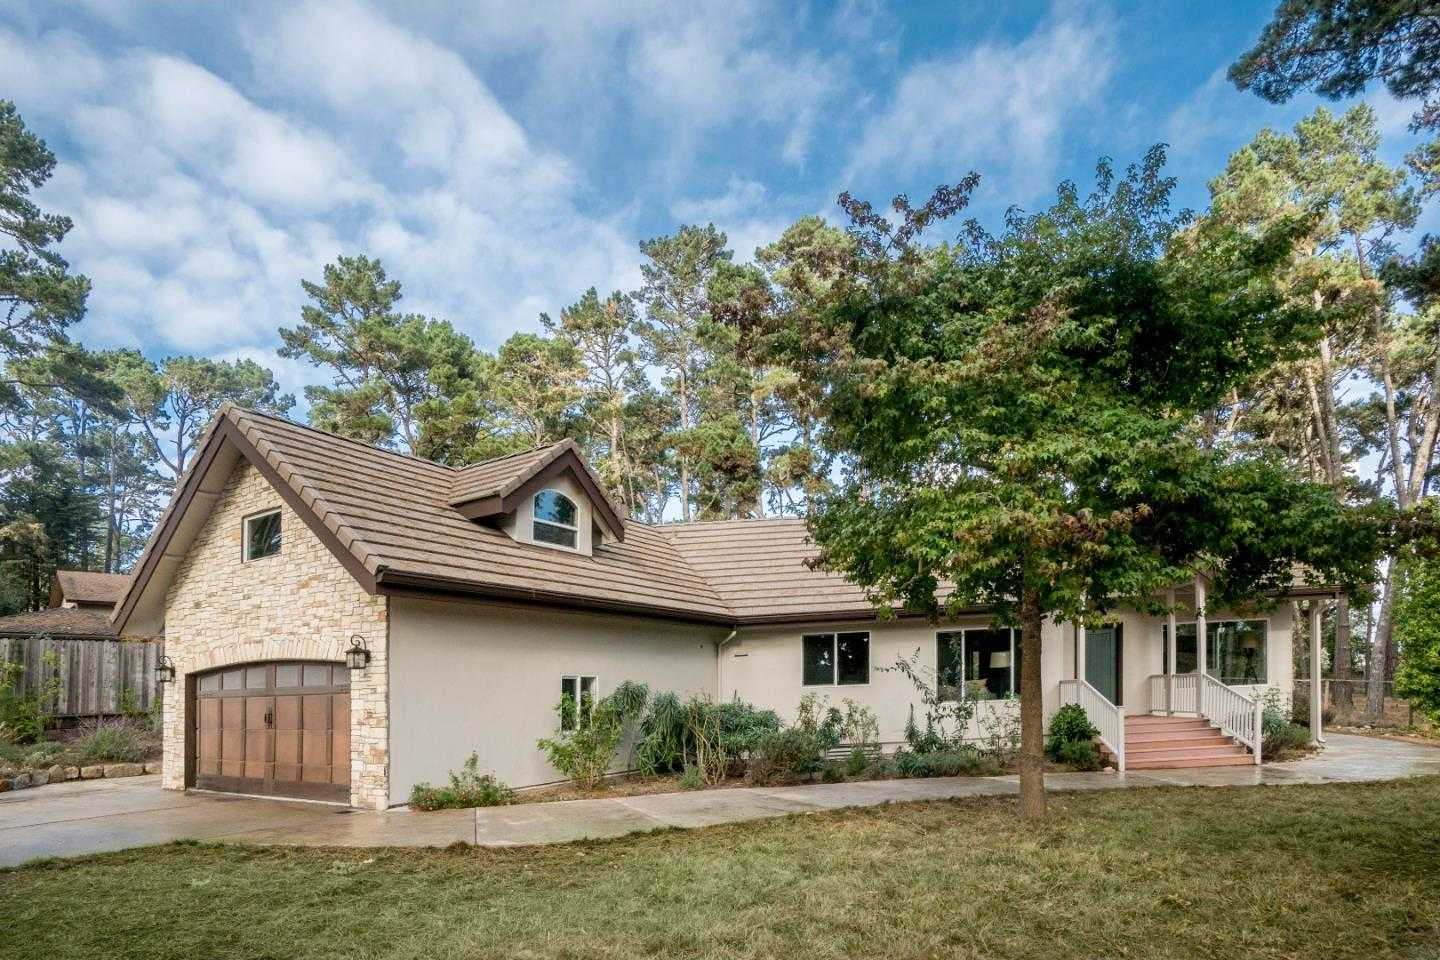 $1,195,000 - 3Br/2Ba -  for Sale in Pebble Beach